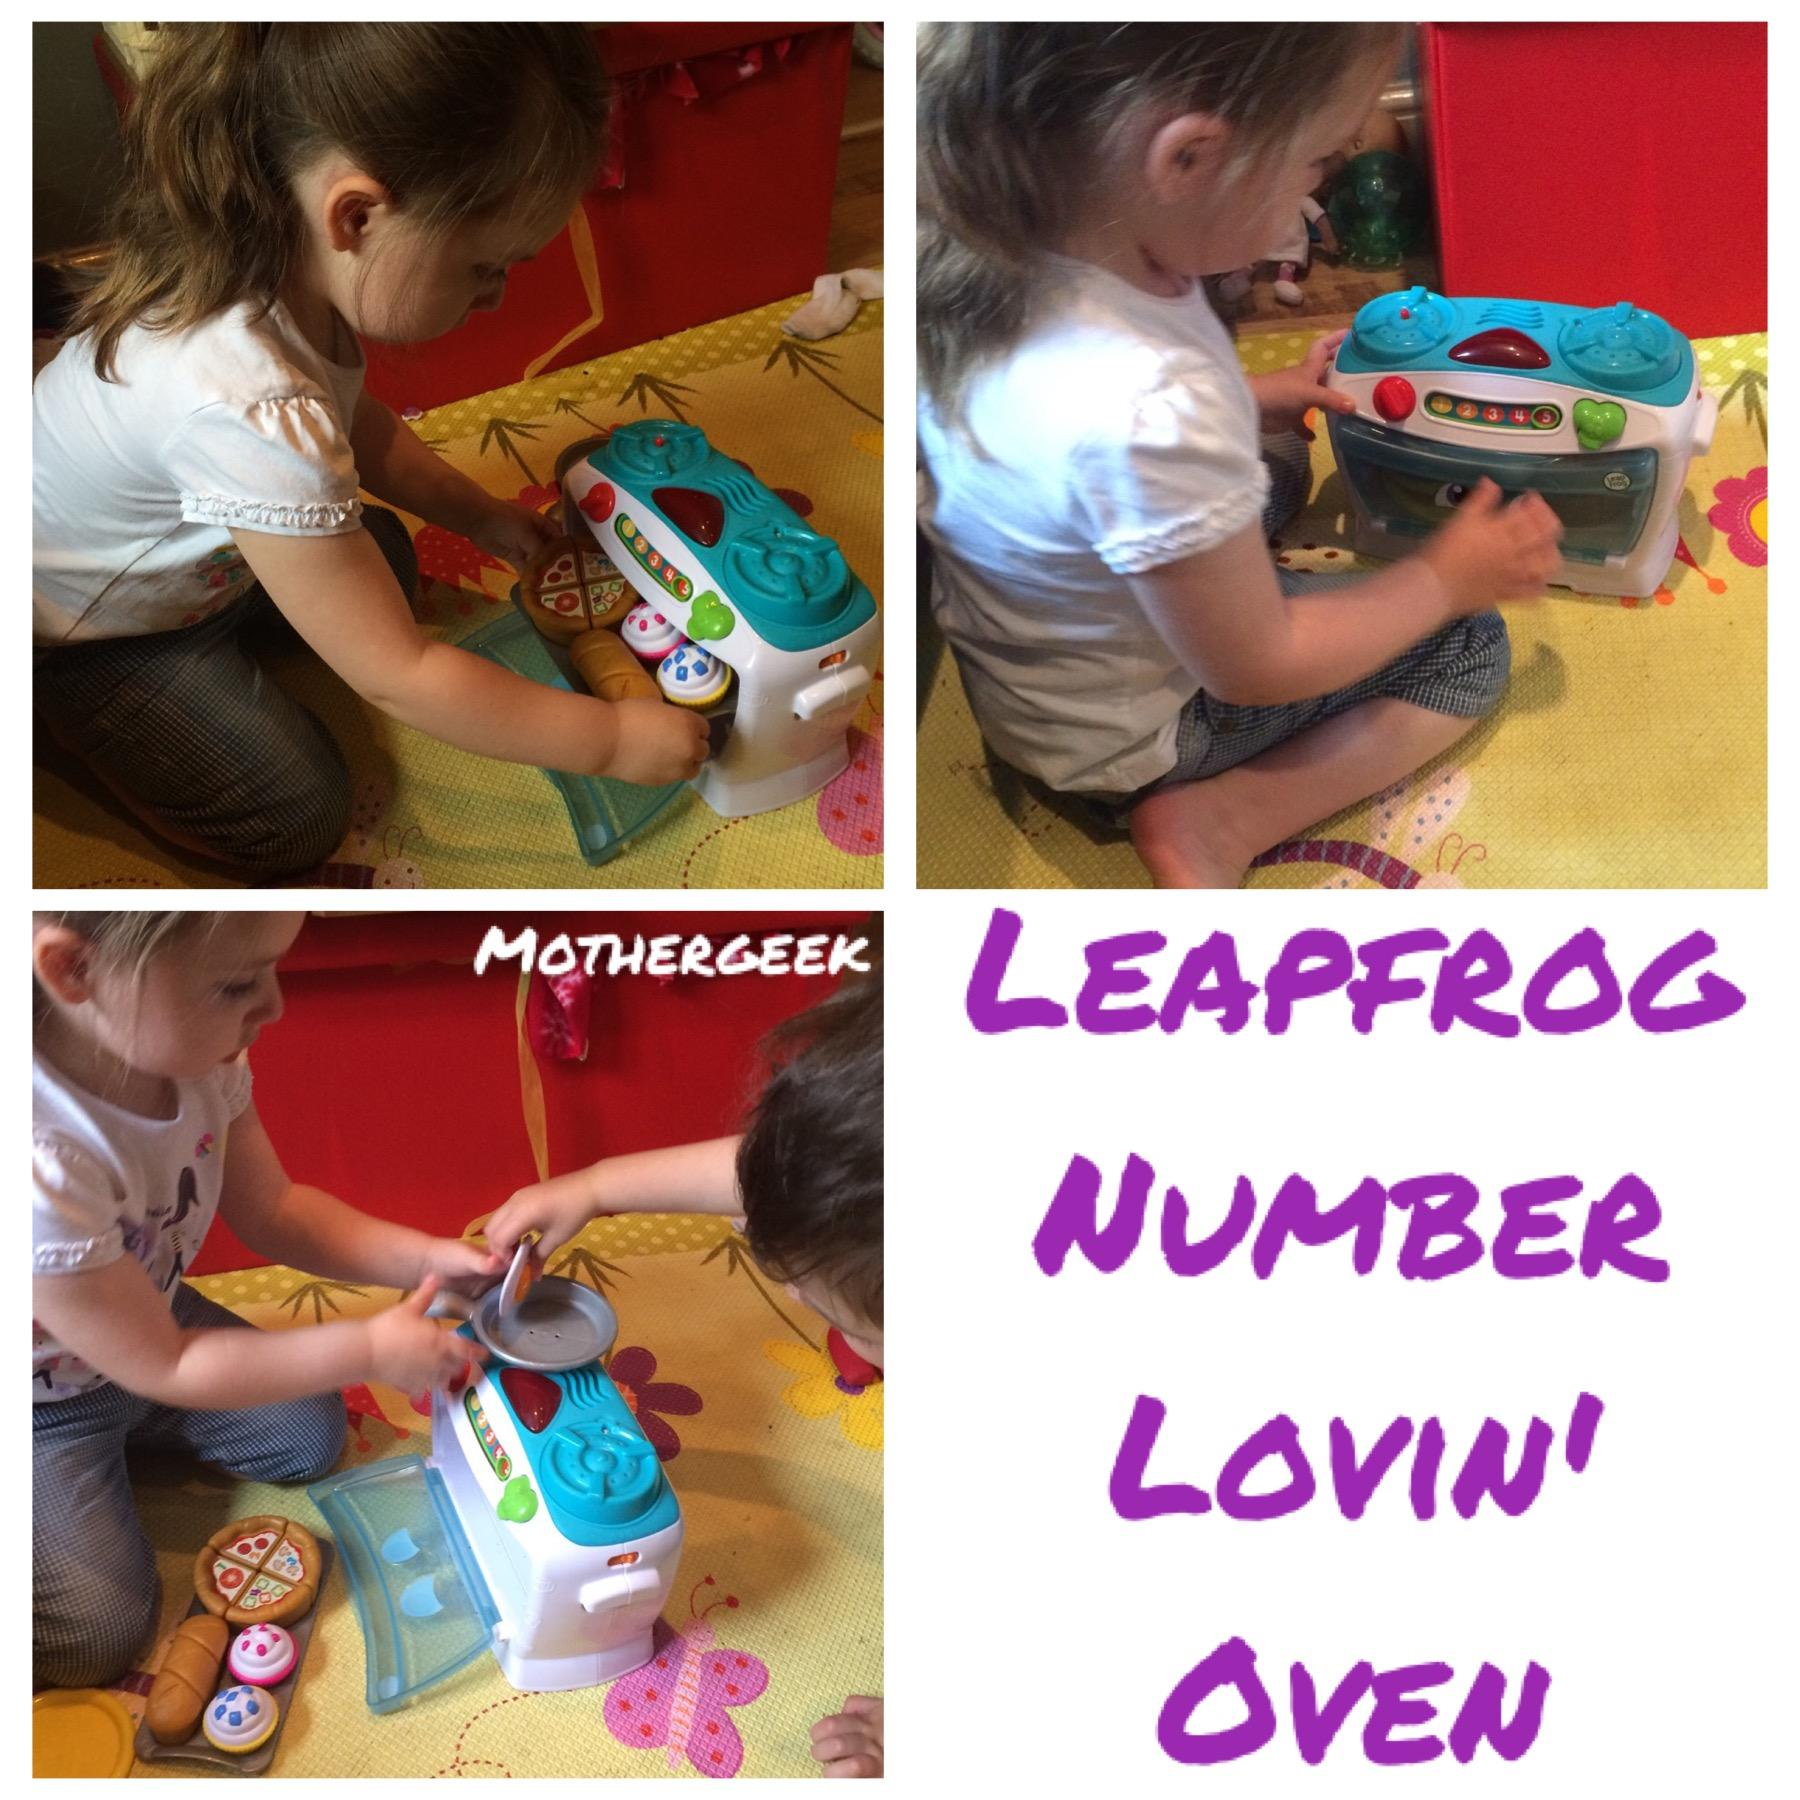 Leapfrog Number Lovin' Oven review - Syd playing with the toy